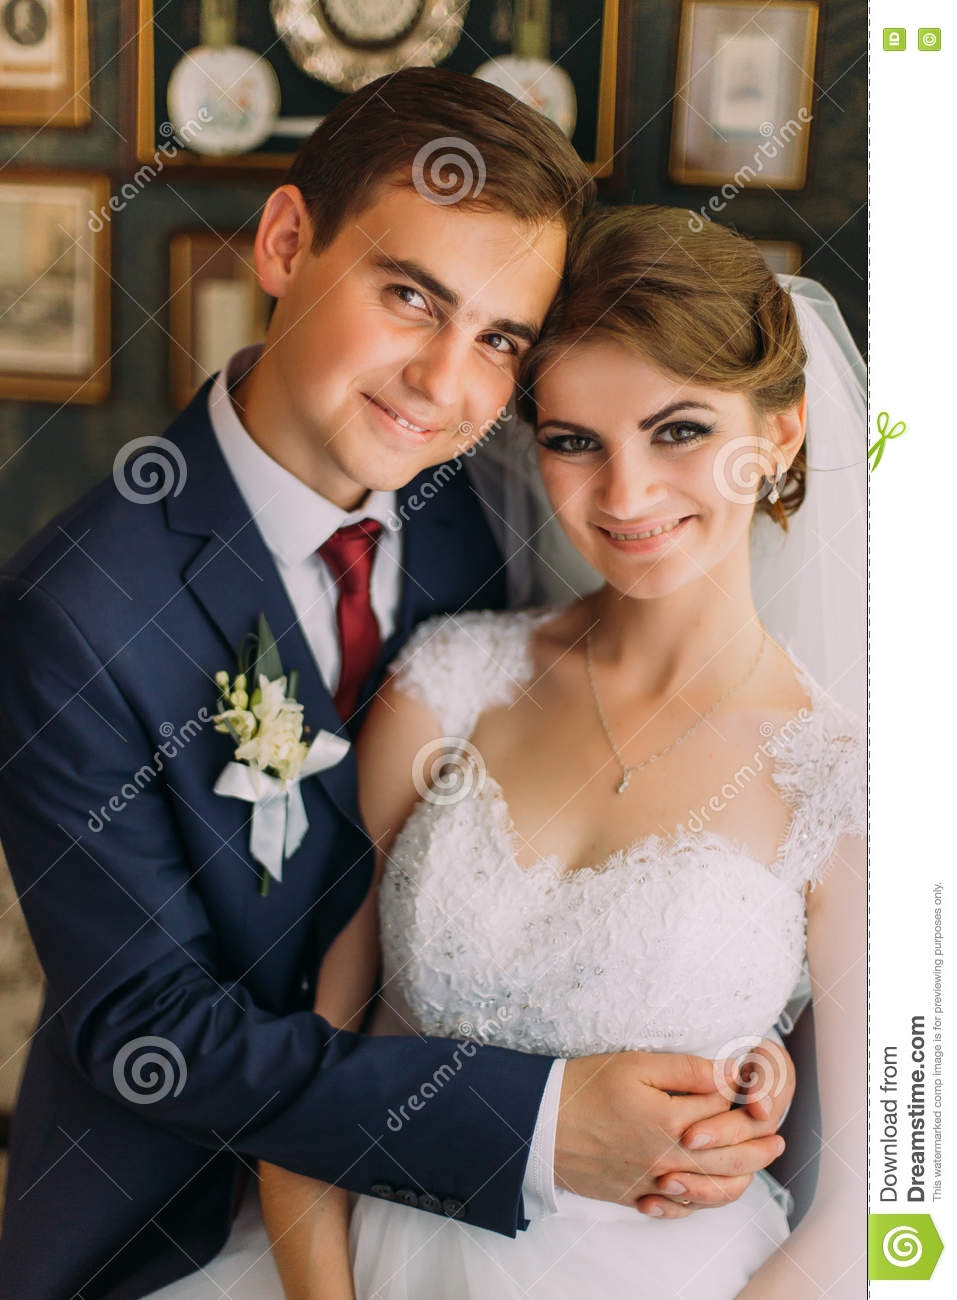 Close-up family photo of bride and groom posing in restaurant with vintage interior